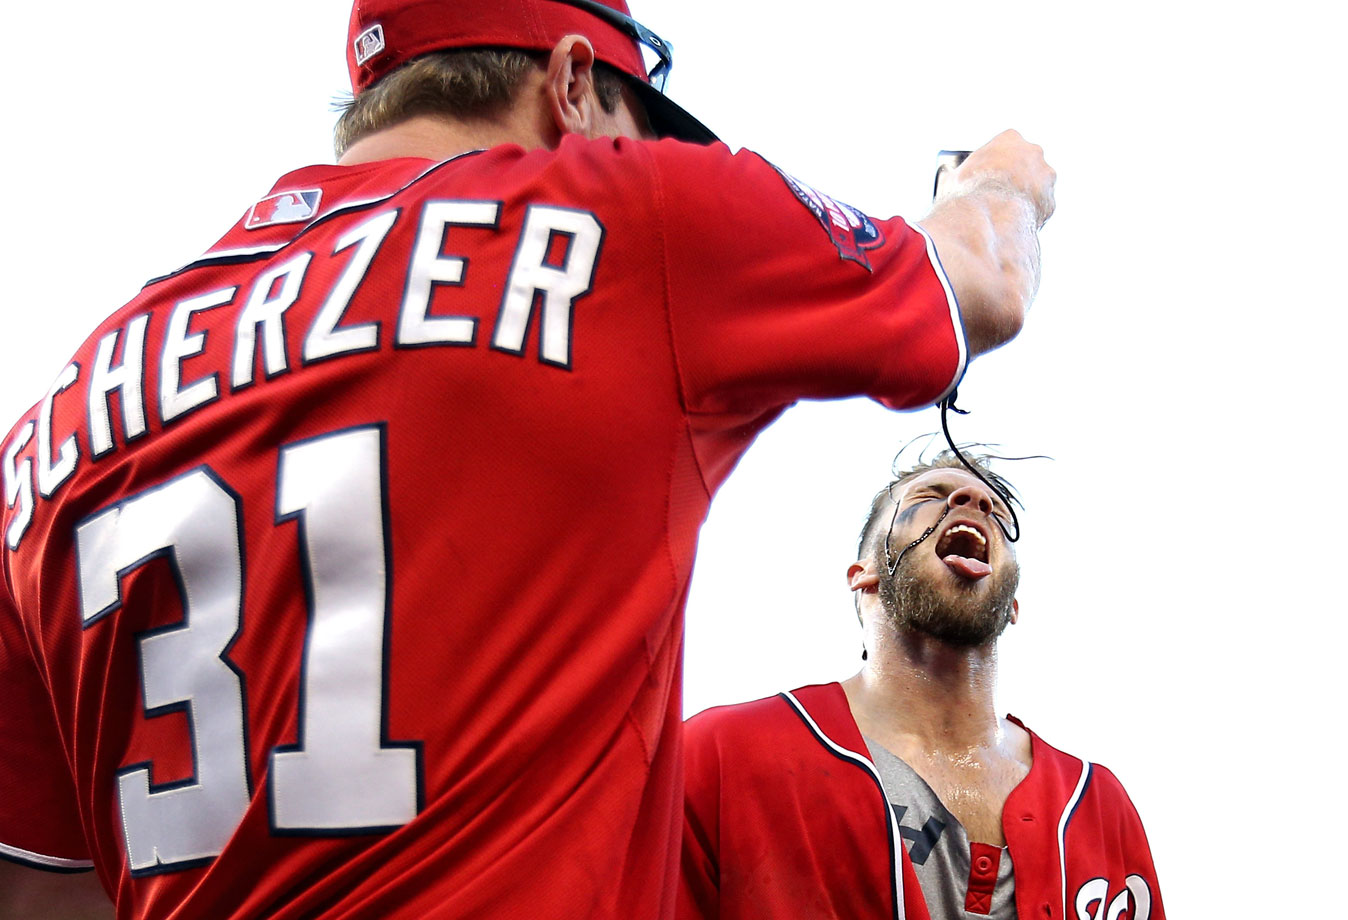 Harper homered for the sixth time in his past three games with a two-run shot in the bottom of the ninth inning that sent the Nationals past the Braves 8-6 on May 9, 2015.